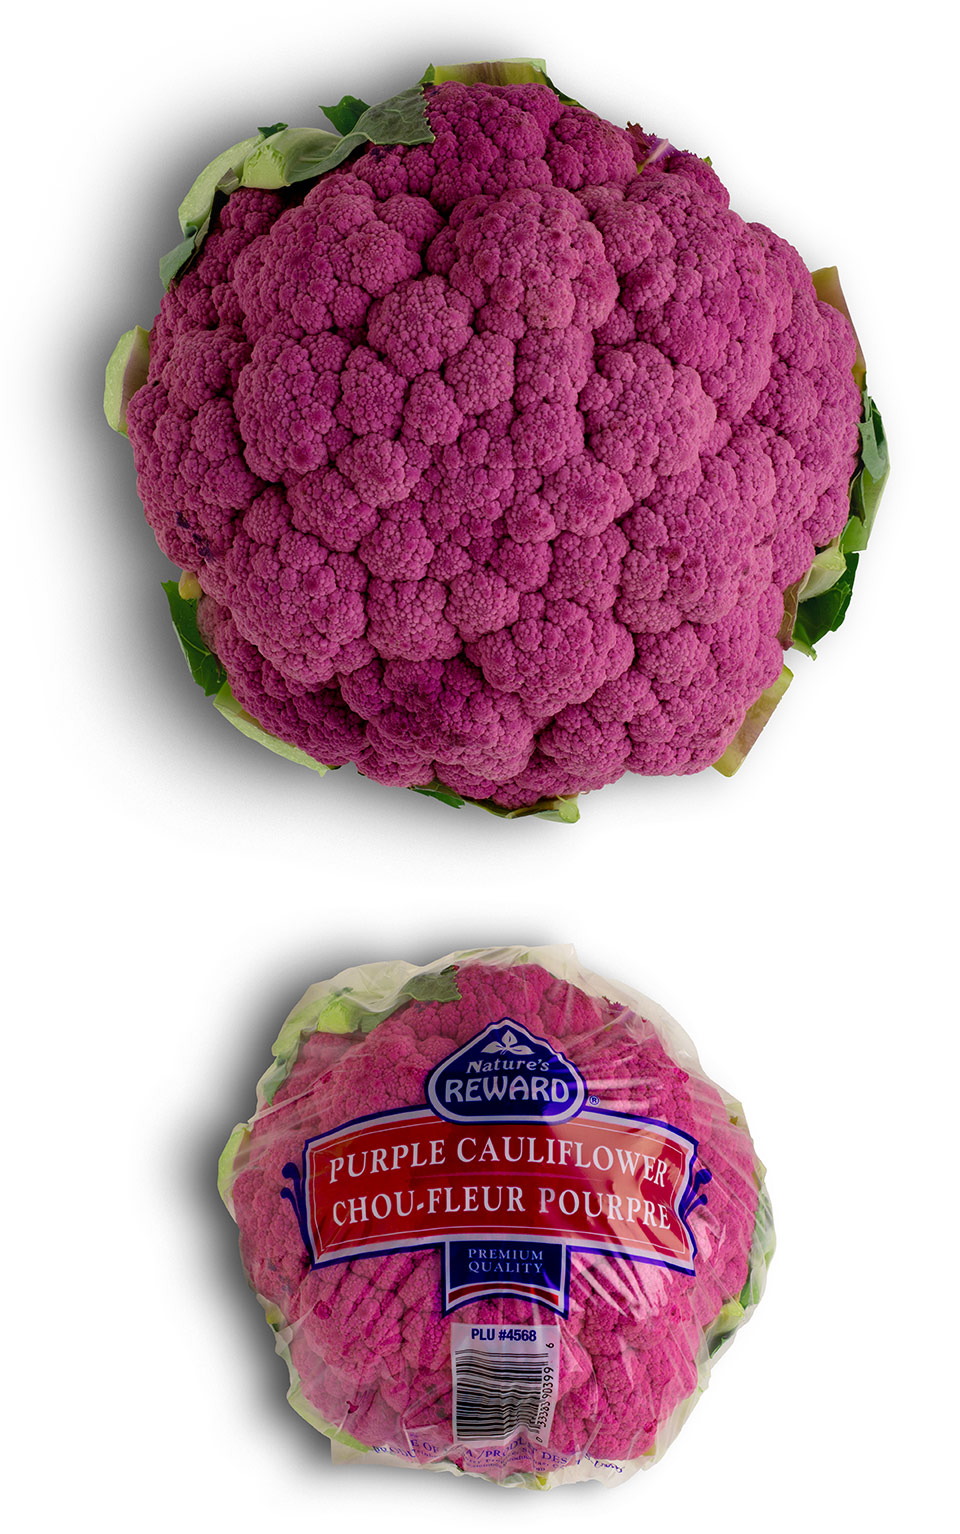 purple-cauliflower-natures-reward